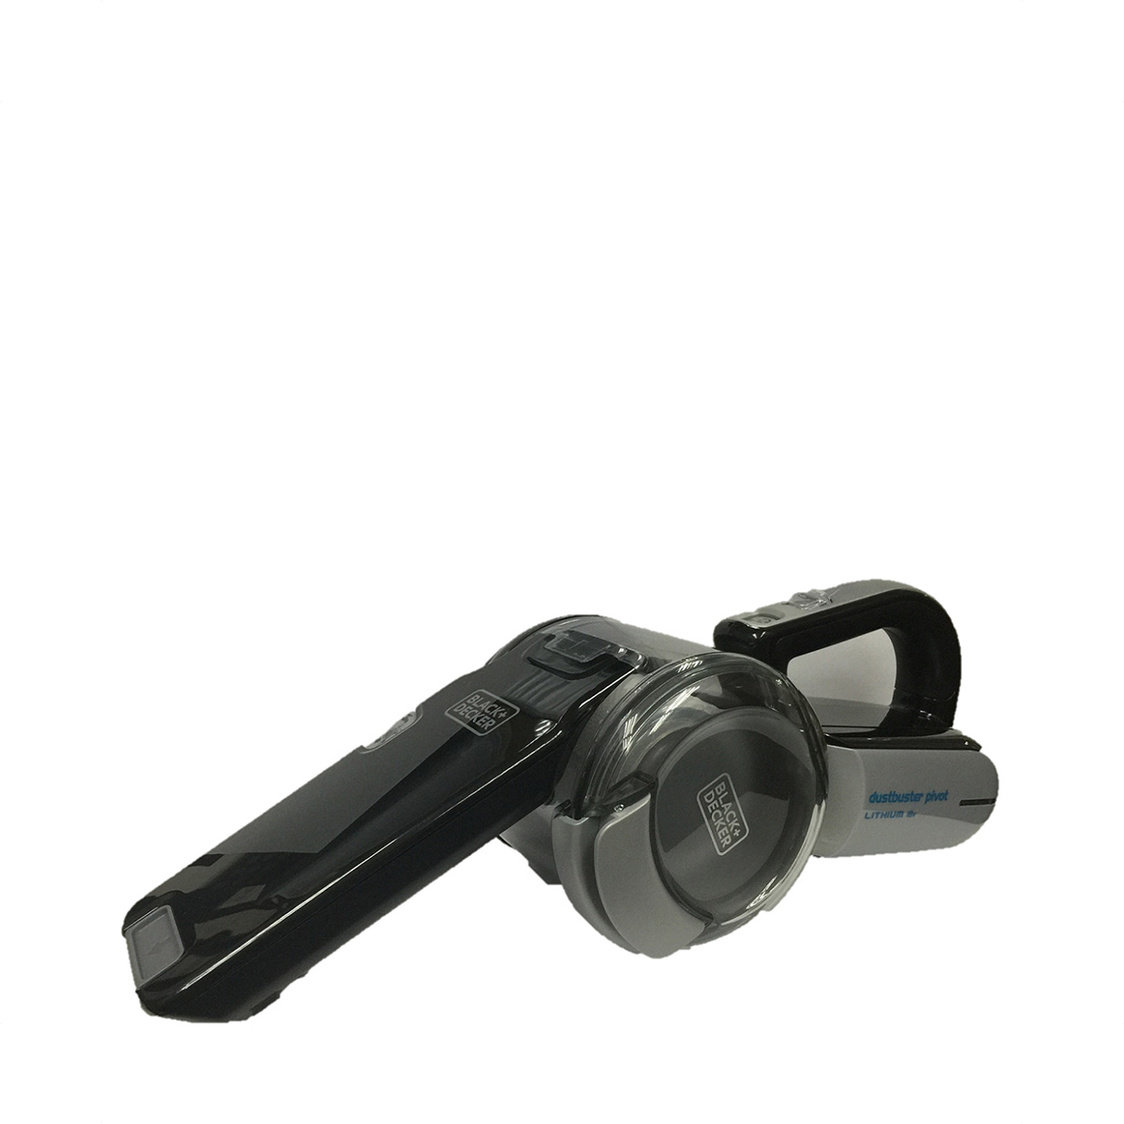 18V Li-ion Pivot Dustbuster Vacuum Black with Extension PV1820BK-B1  PVA03-B1